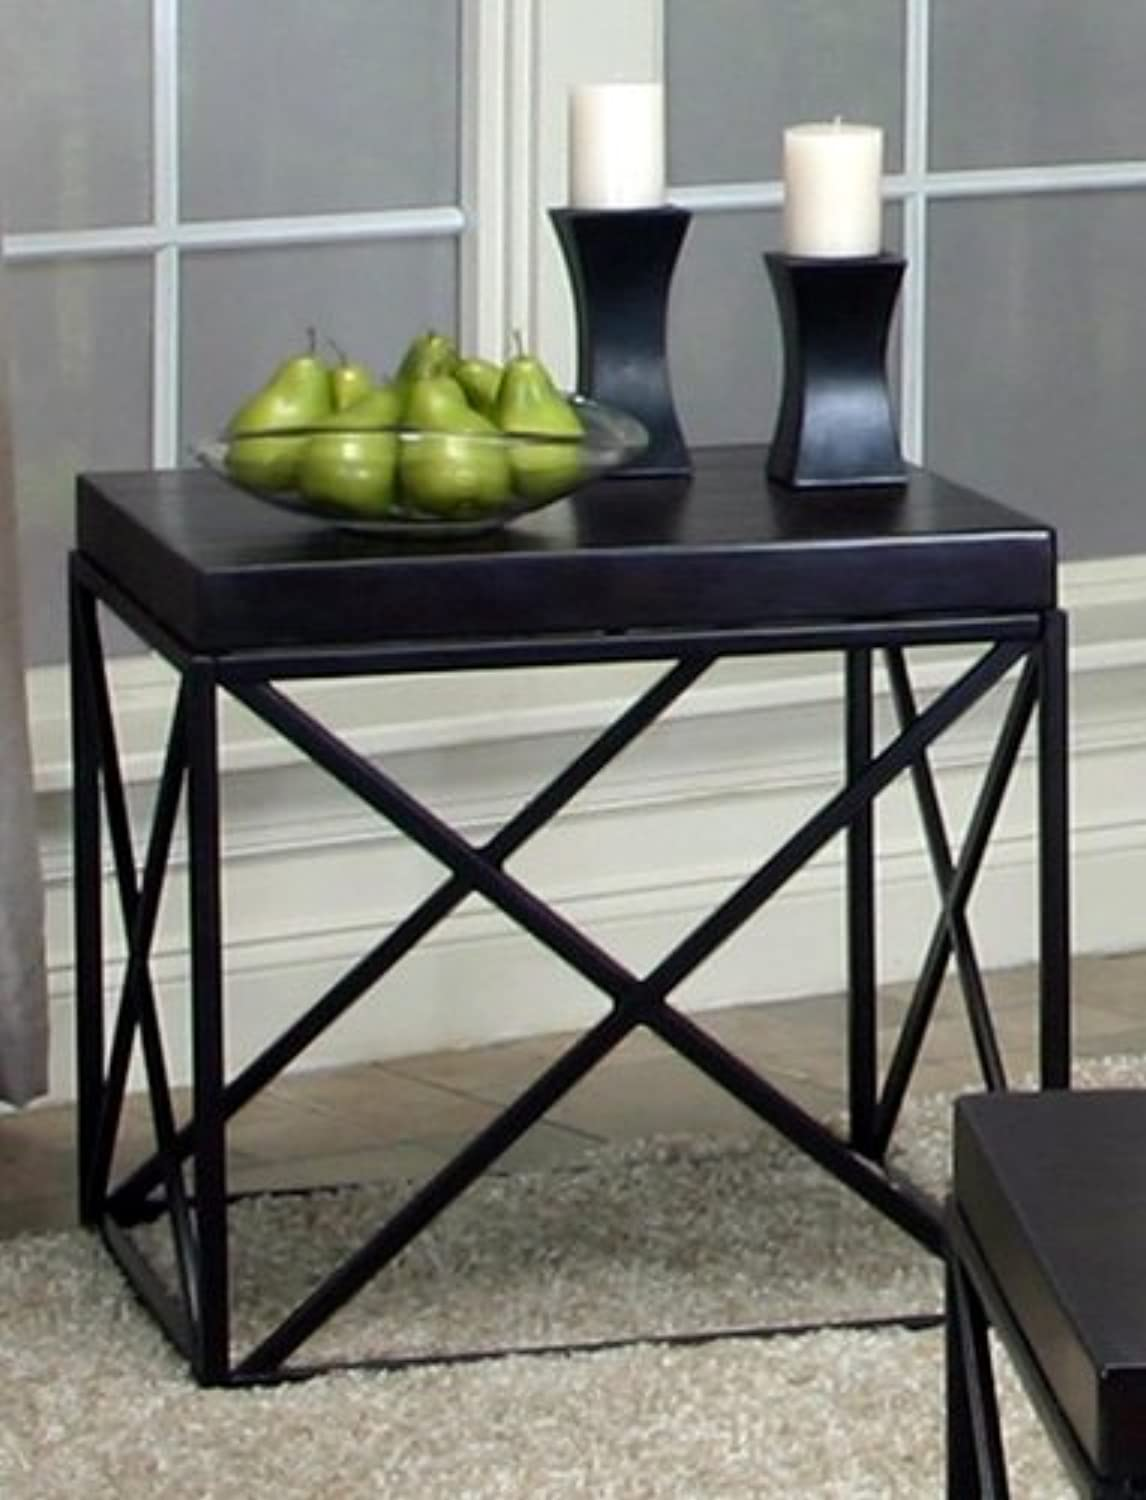 Roundhill Furniture Erica Black Metal and Espresso Wood End Table